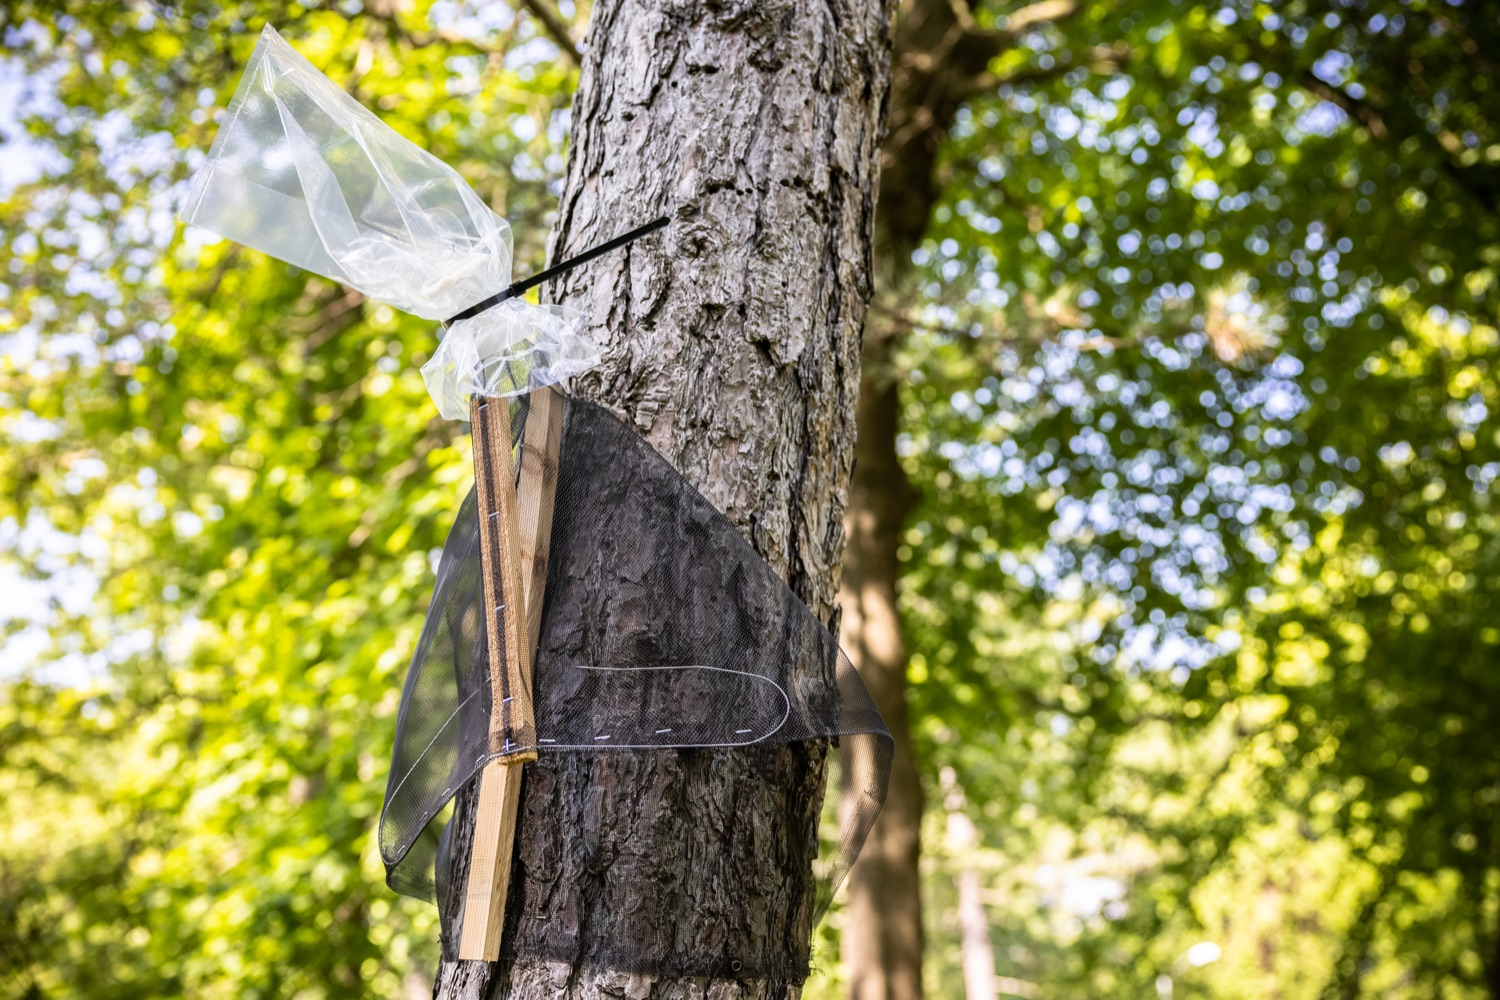 """<a href=""""https://filesource.wostreaming.net/commonwealthofpa/photo/18762_agric_slftrap_dz_011.jpg"""" target=""""_blank"""">⇣Download Photo<br></a>A circle trap deployed on a tree. Today in Harrisburg, a specialist from the PA Department of Agriculture demonstrated how homeowners can use a circle trap to eliminate large numbers of destructive Spotted Lanternflies without harming beneficial pollinators or small animals.   Harrisburg, PA  May 21, 2021"""